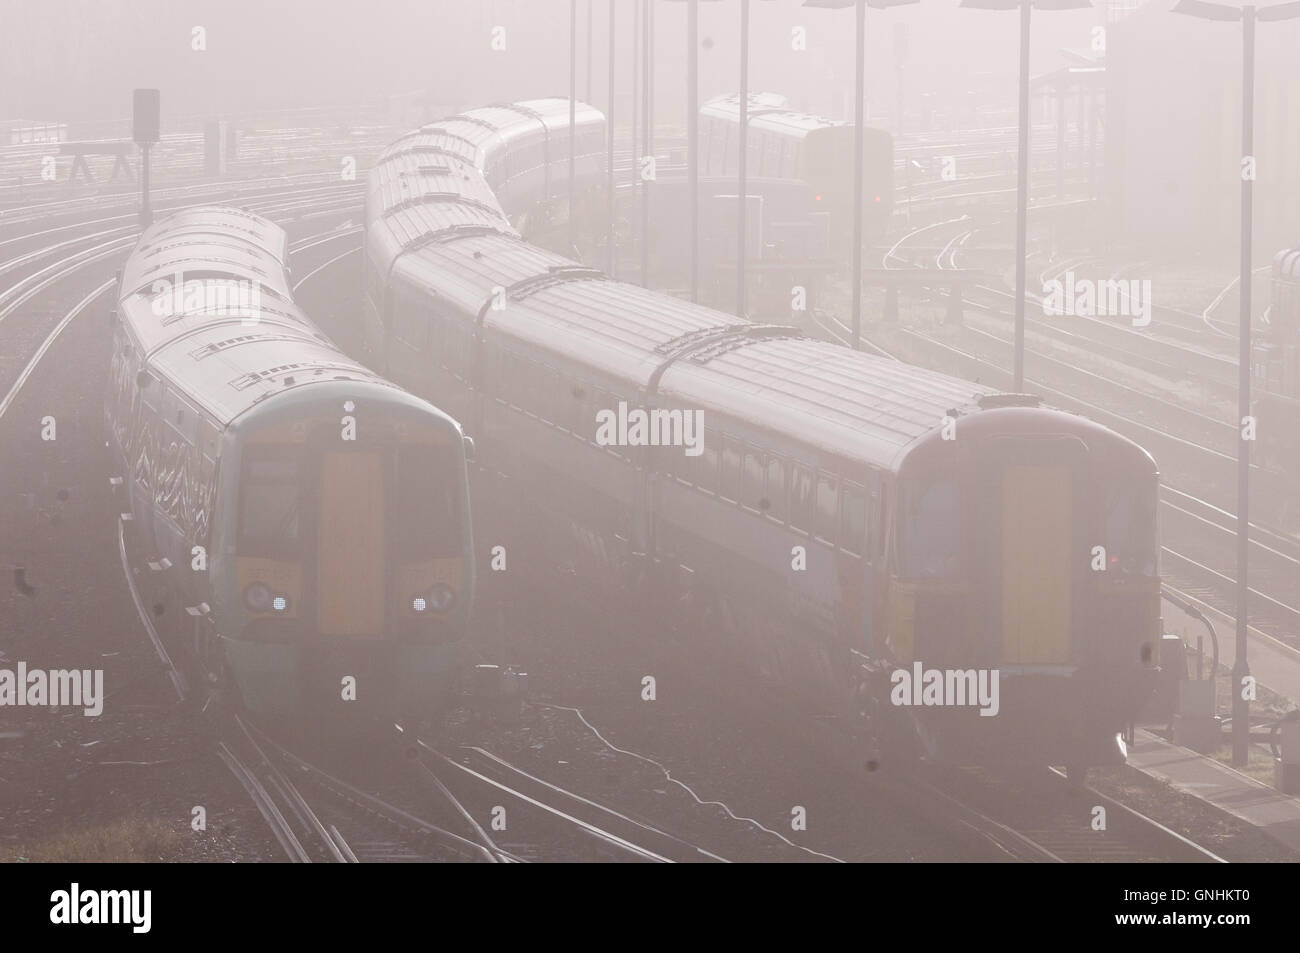 Trains struggling through a foggy morning Stock Photo